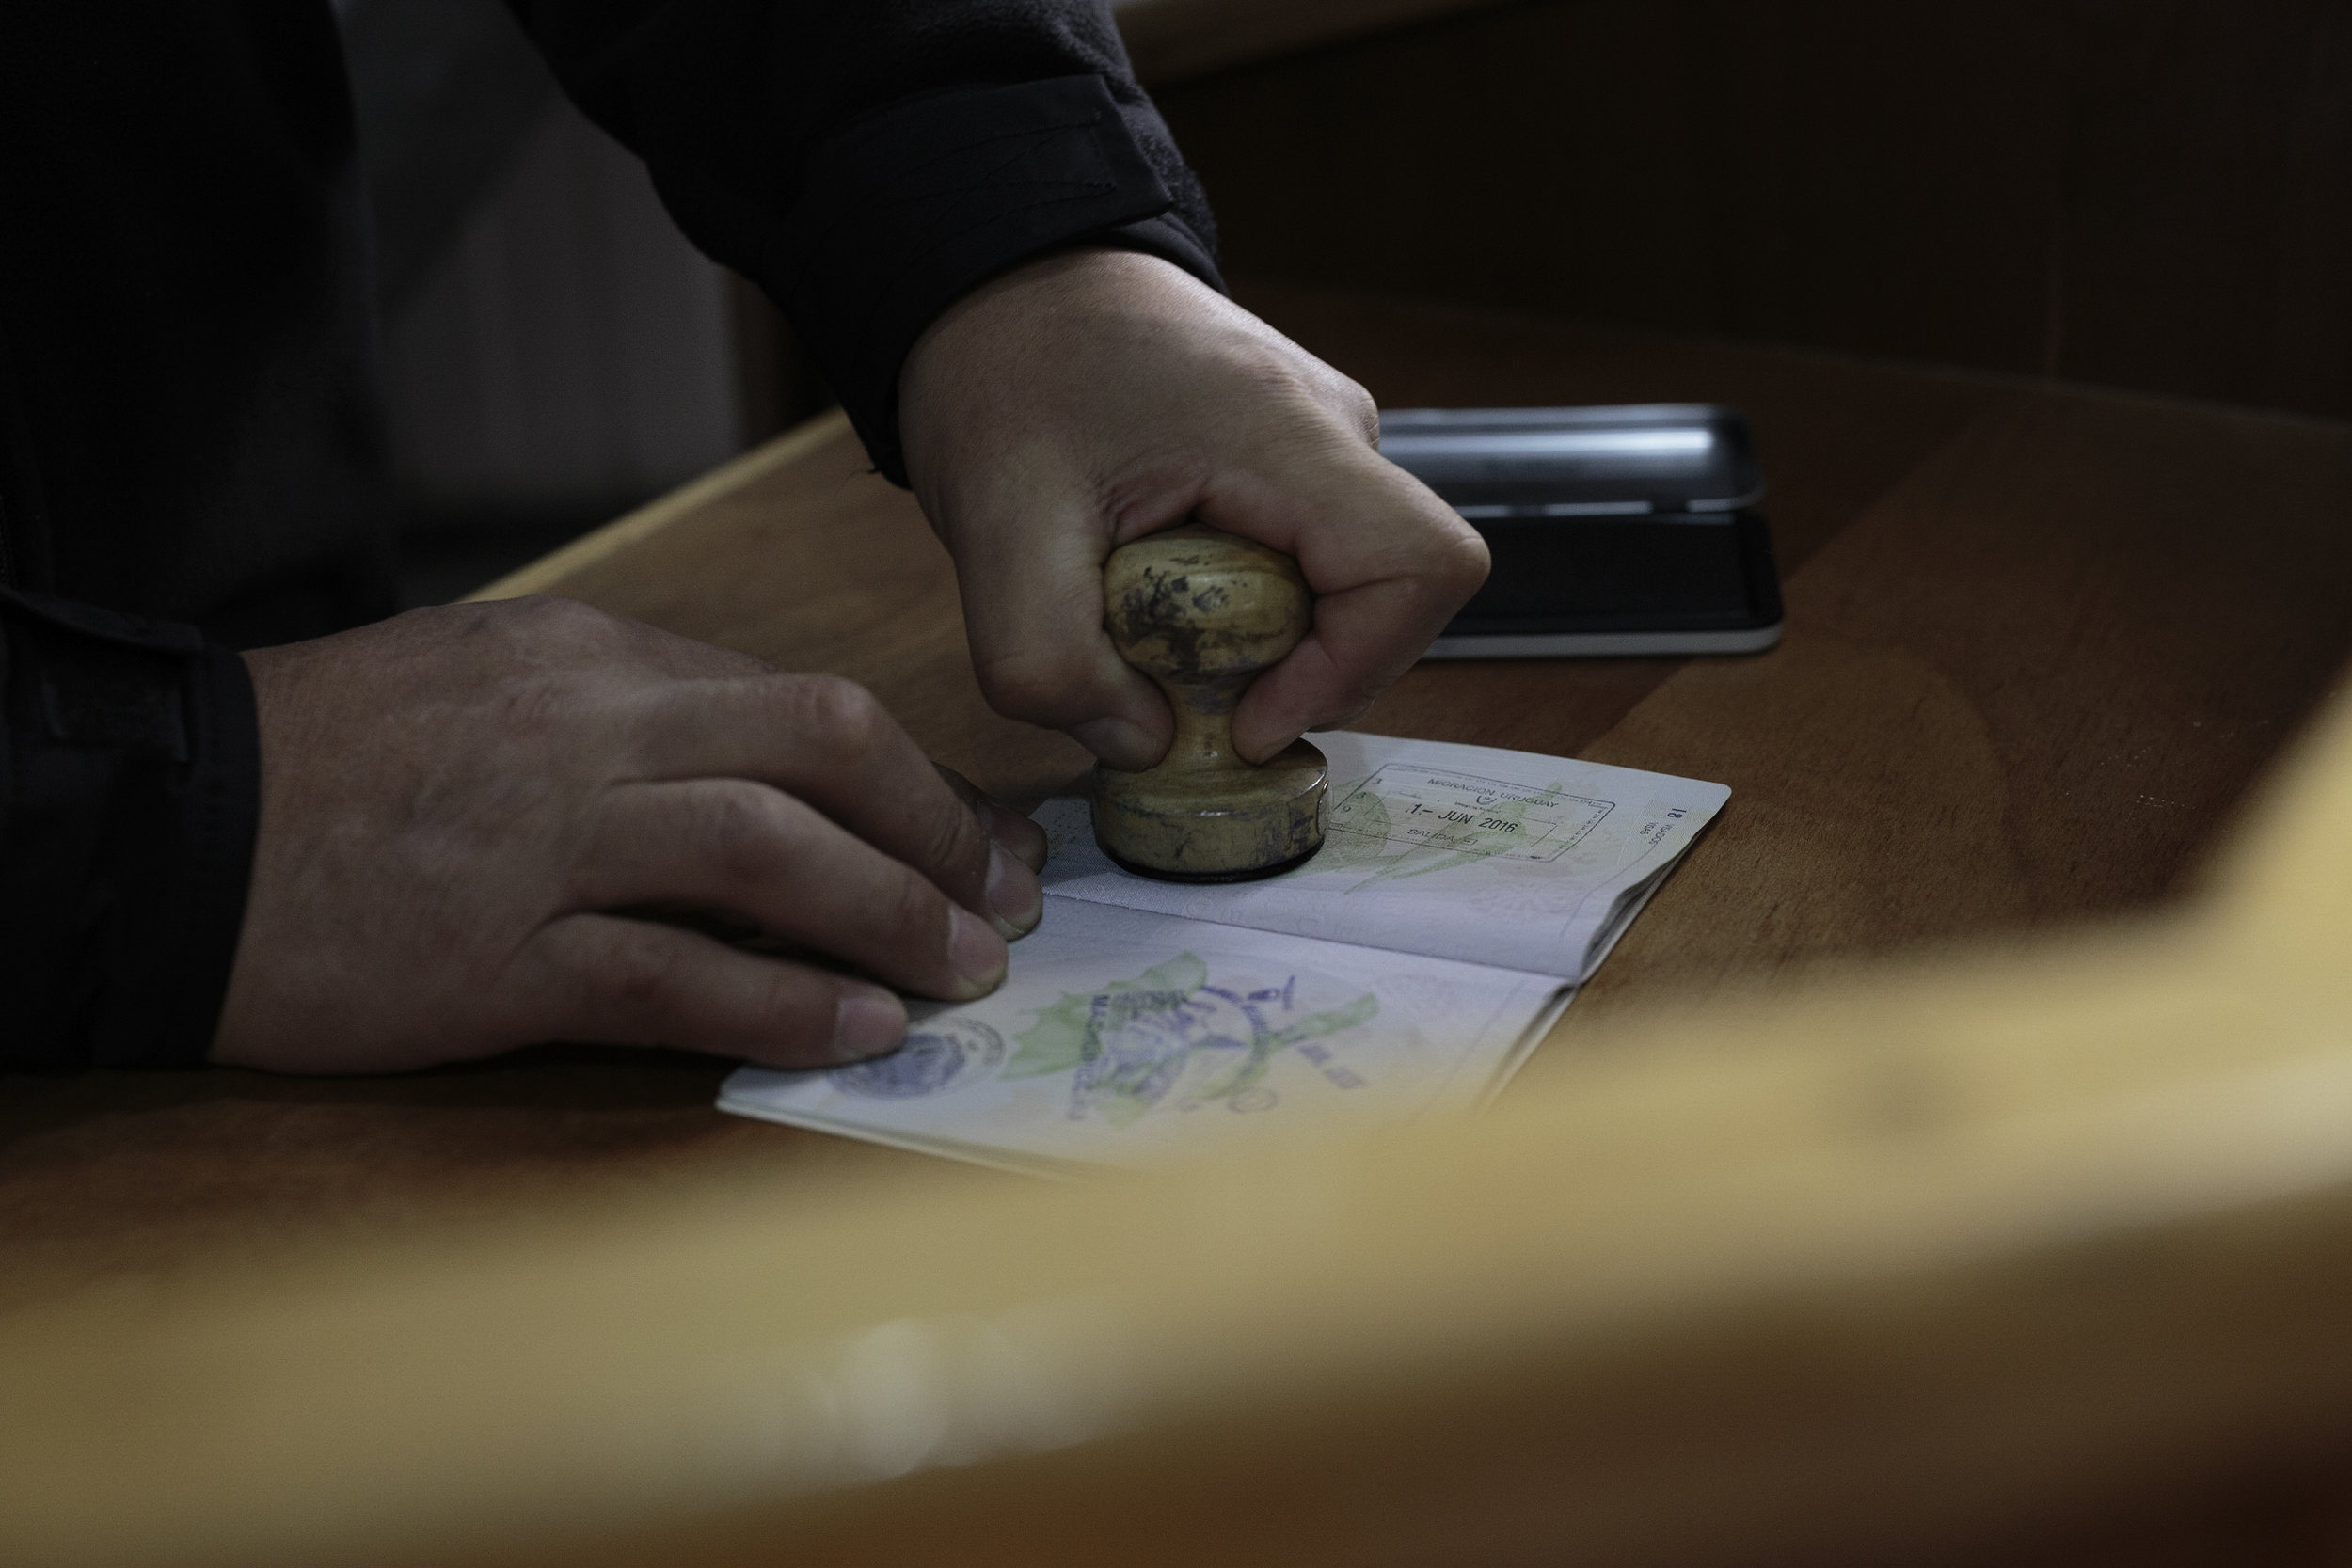 A Chilean military officer stamps passports at O'Higgin's base.